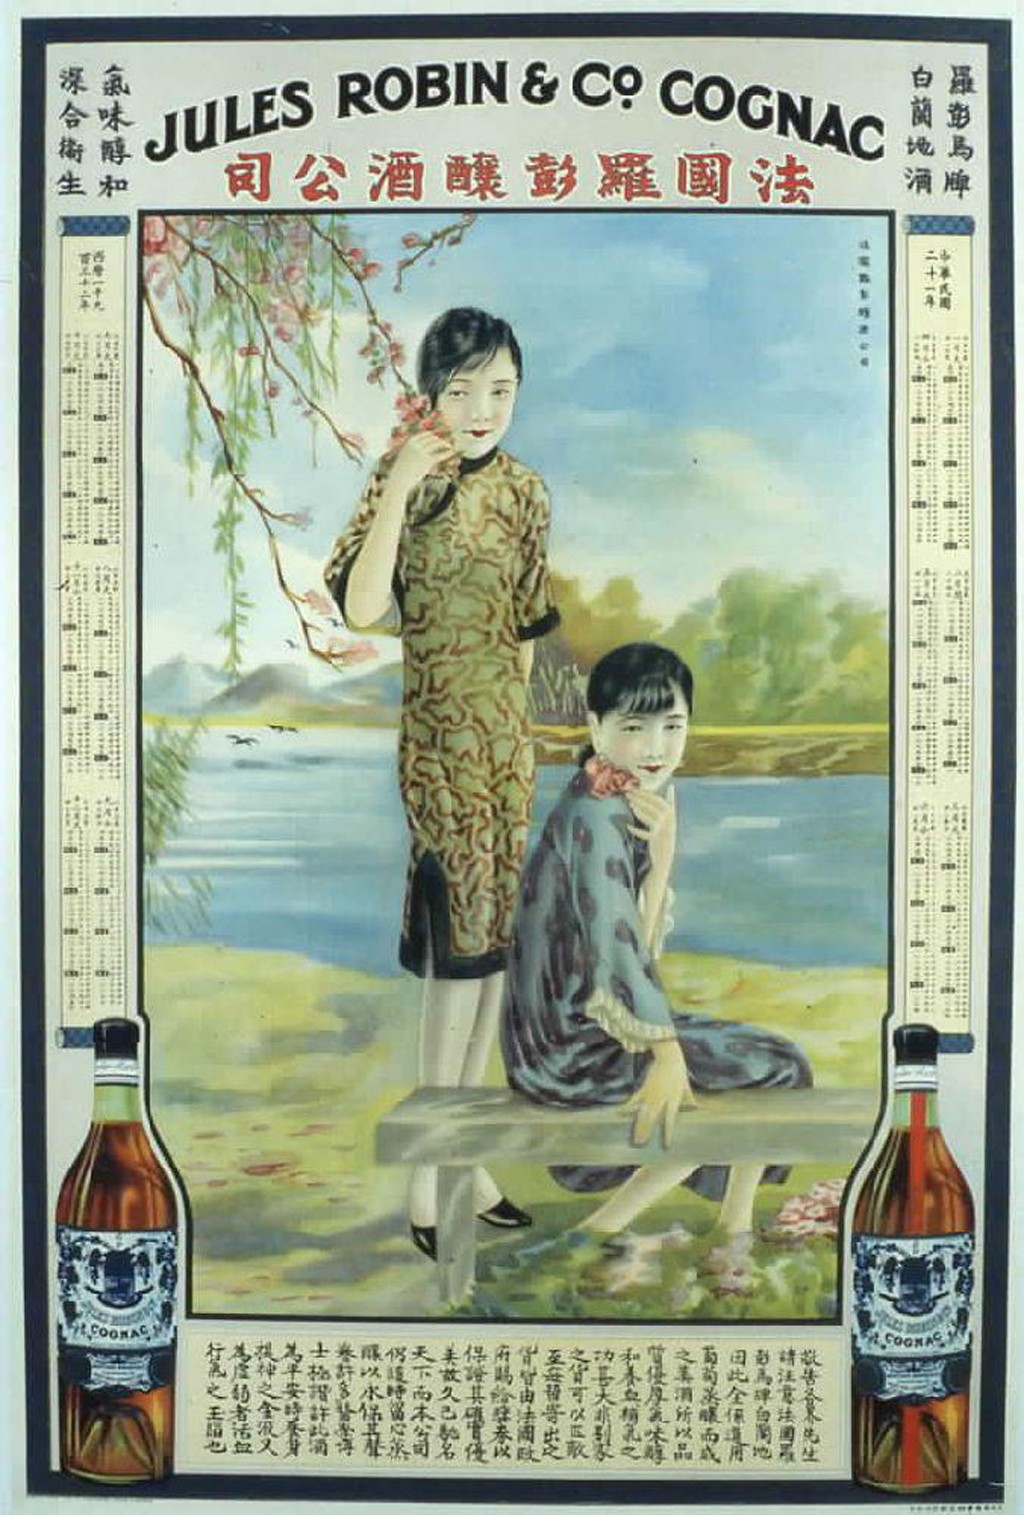 Cognac-Chine-1920-calendrier-jules-robin-and-co-AD16-lemaire-hebdo-vin